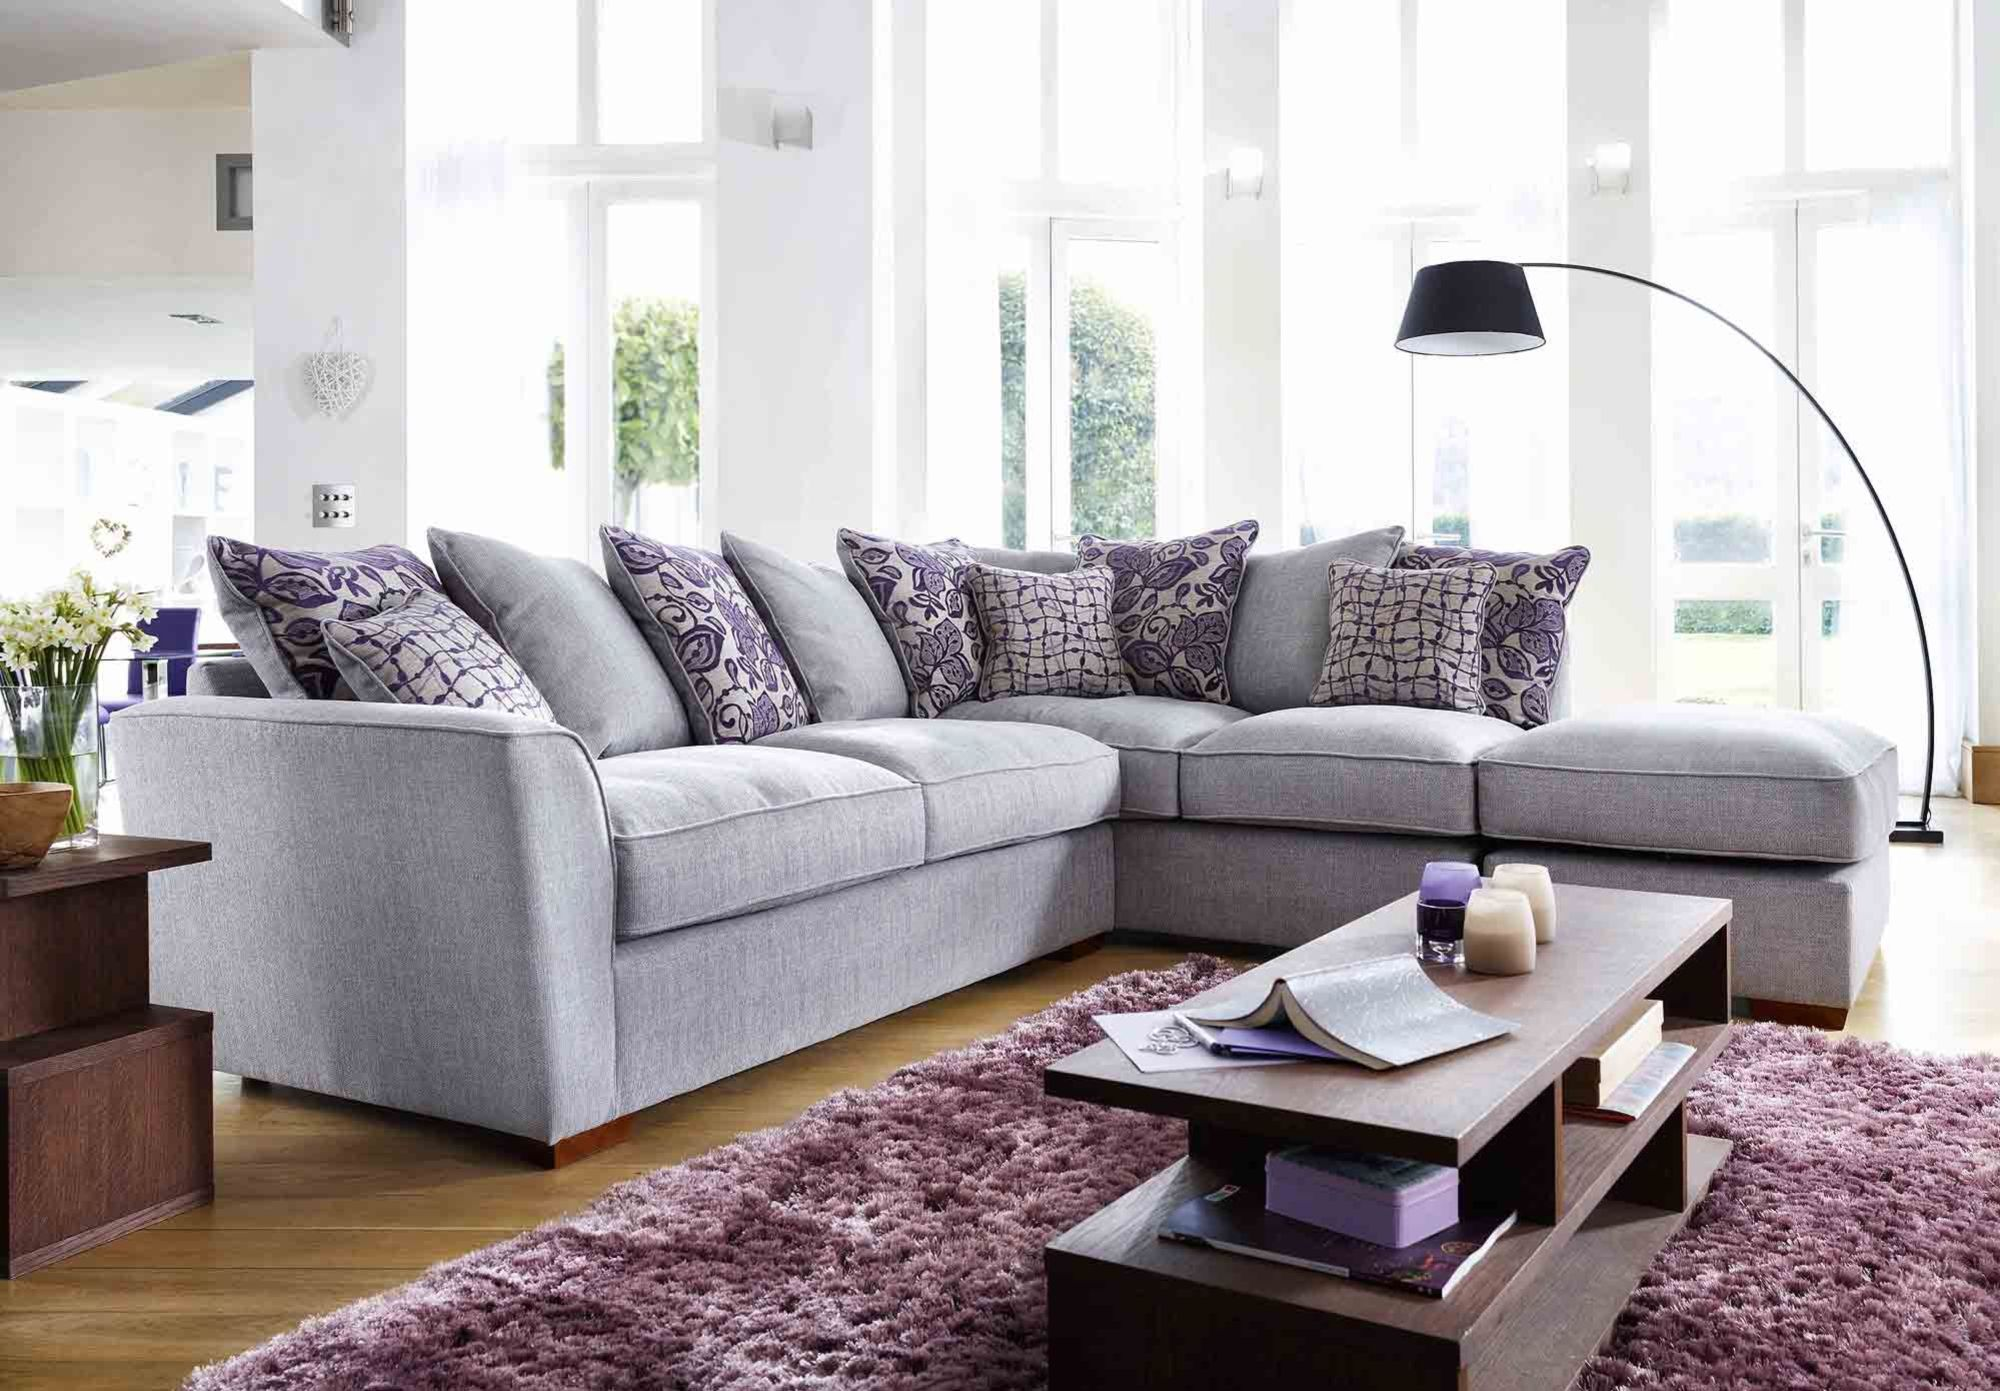 2 Seater Sofa Bed Furniture Village New Chic Covers Fable Lhf Scatter Back Corner At